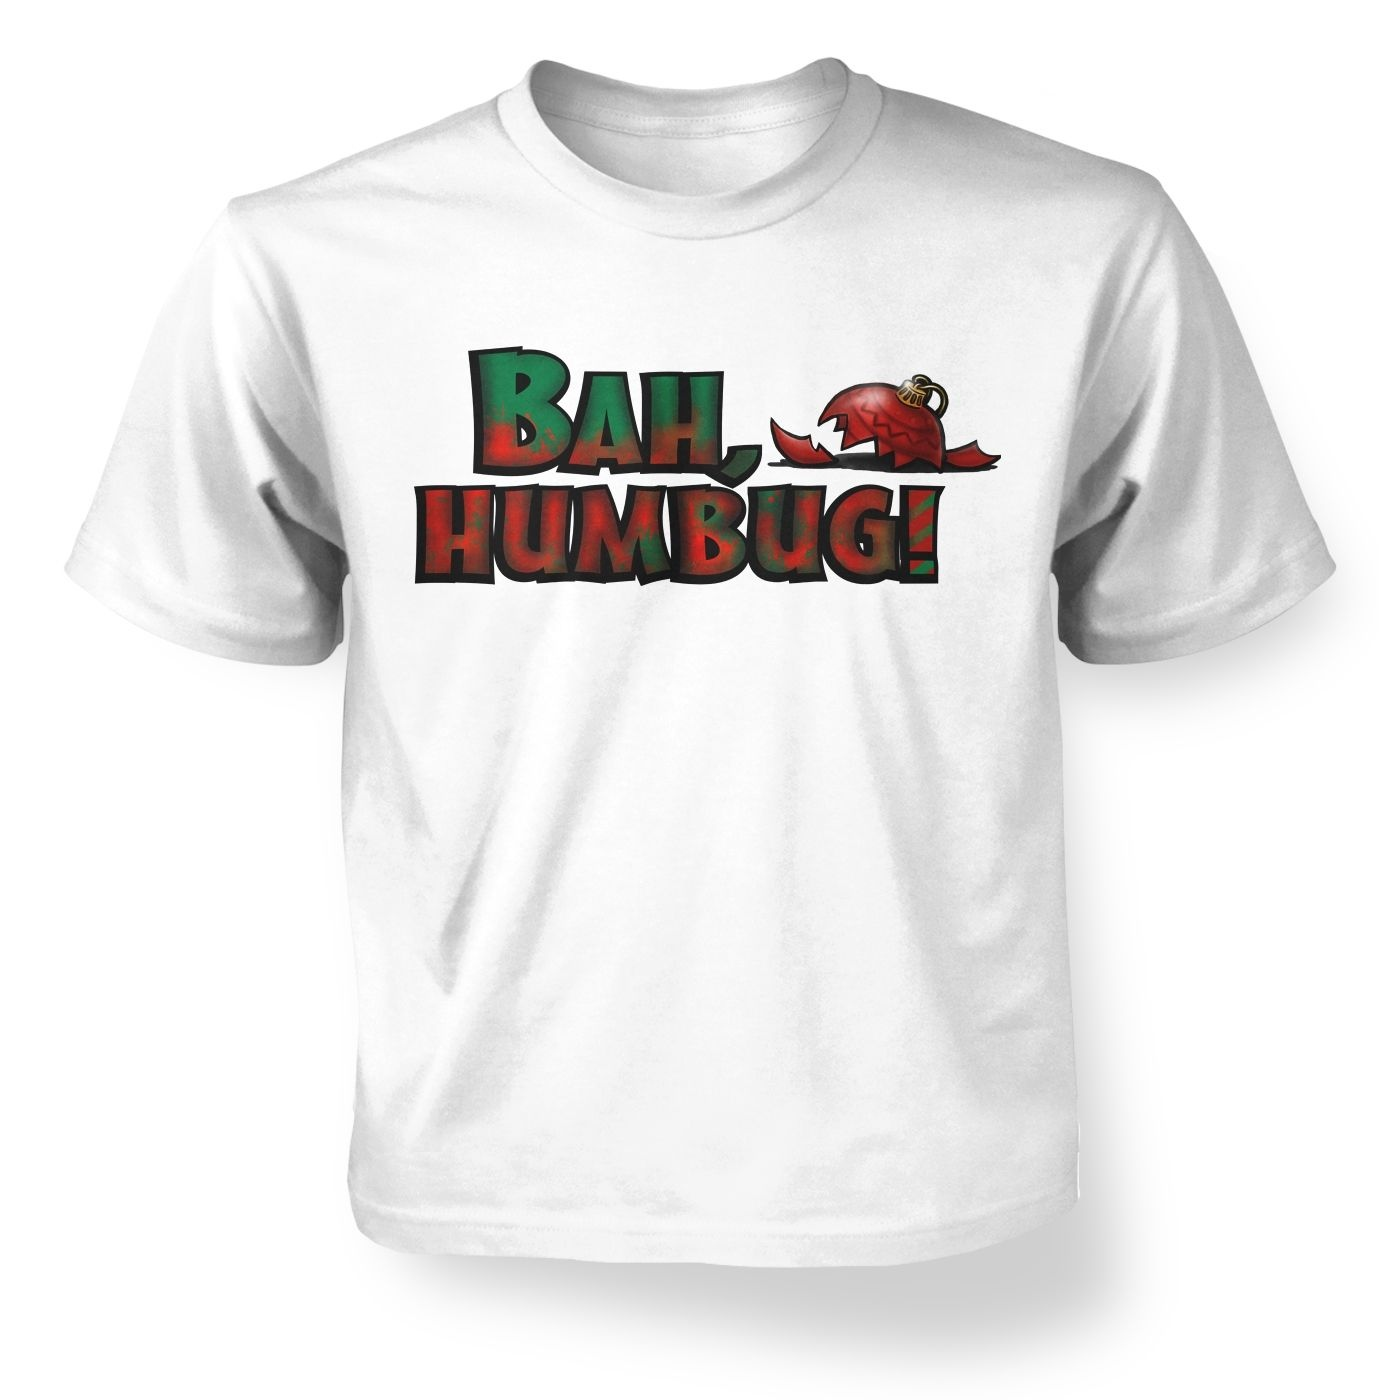 Bah humbug! Children's T-Shirt